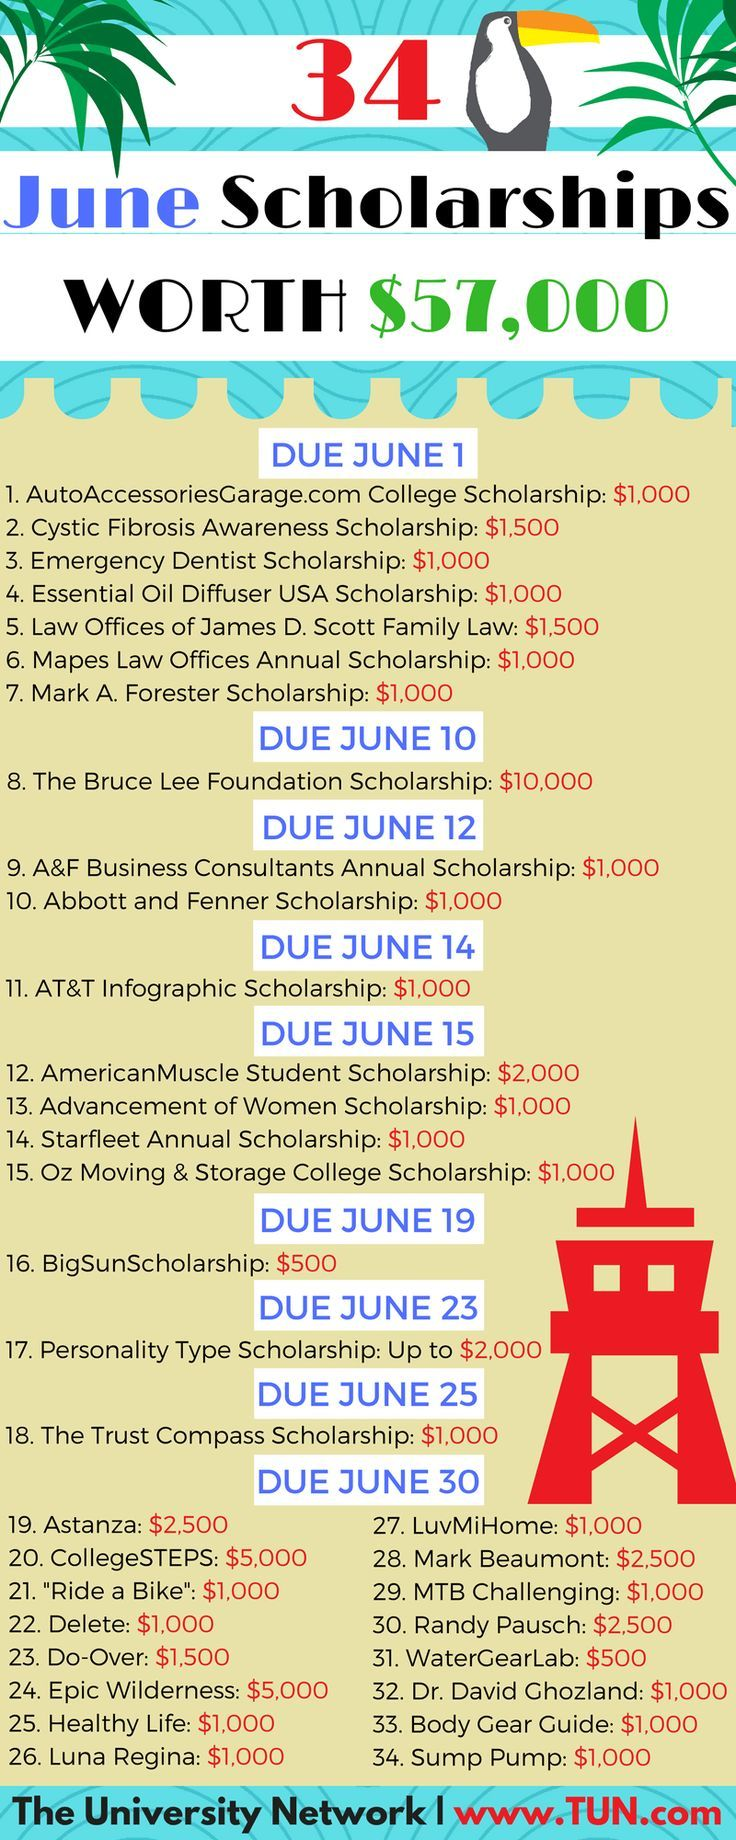 It's June and the scholarships are heating up! Here are 34 scholarships with June deadlines – apply away before the month flies by! Are you on Pinterest? Save this pin for later! ⤦⤦⤦ 1. AutoAccessoriesGarage.com College Scholarship – $1,000 – Apply annually by June 1 Answer the following question in 500-1000 words: Although the sales of electric vehicles have picked up in the past few years, only about 1% of all American households own an electric vehicle. What do you think is the bigg...